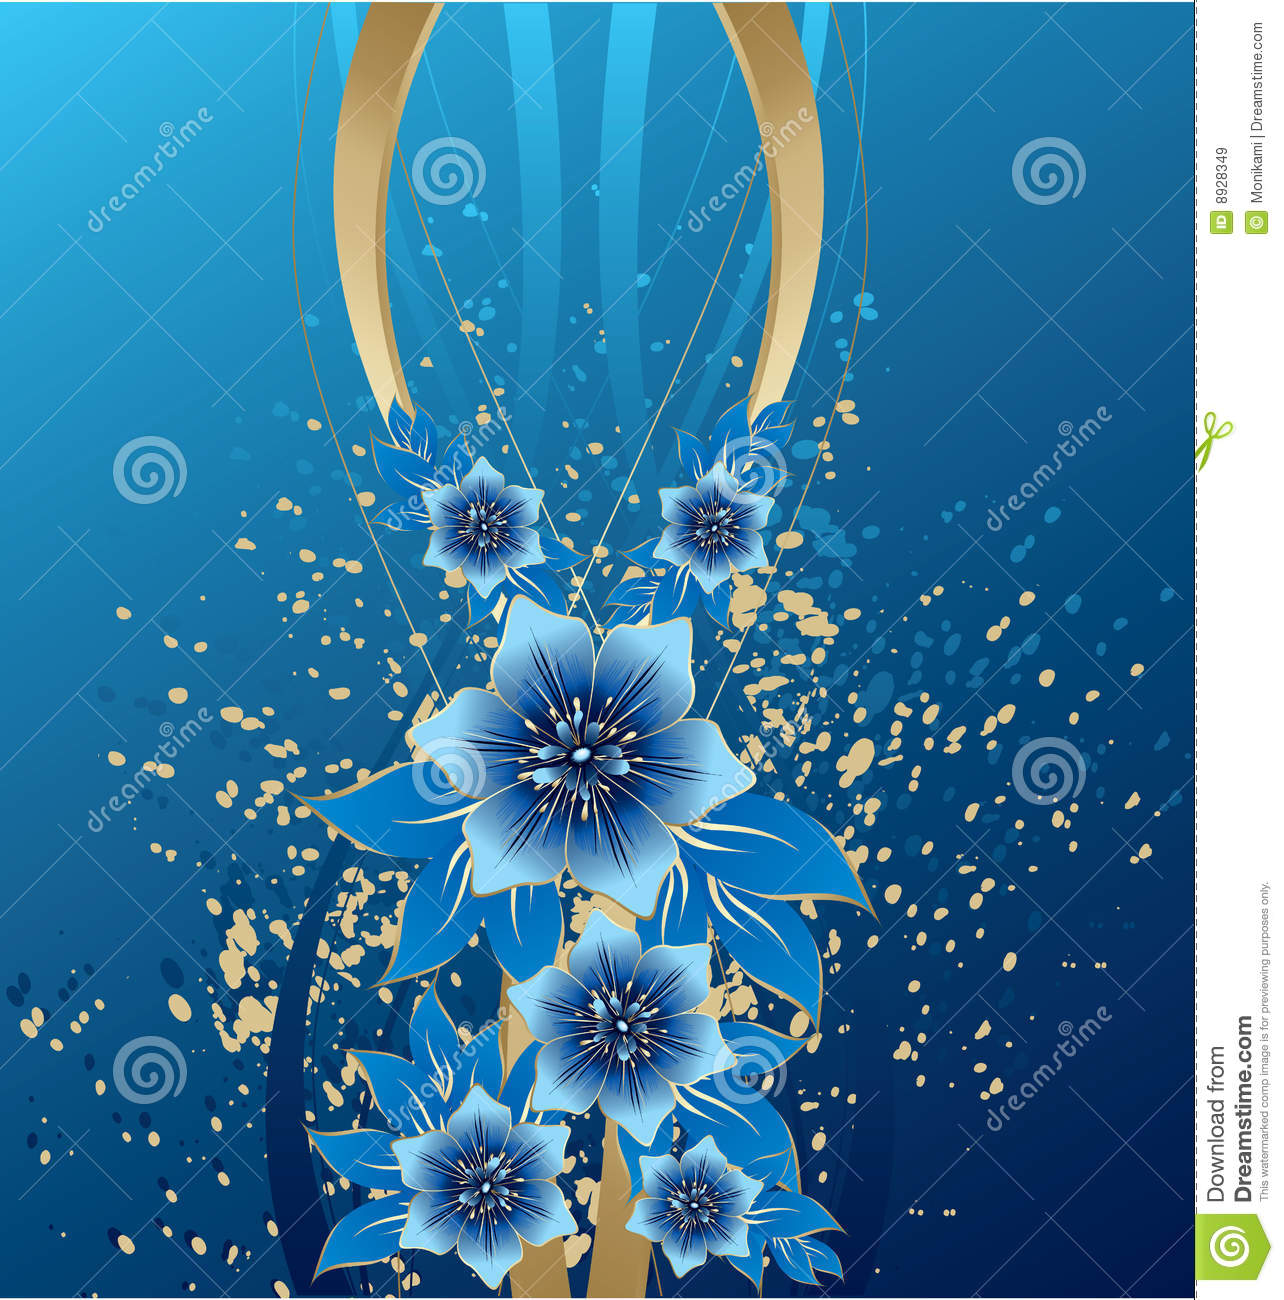 Abstract blue flowers on grunge background stock vector download abstract blue flowers on grunge background stock vector illustration of blue creative izmirmasajfo